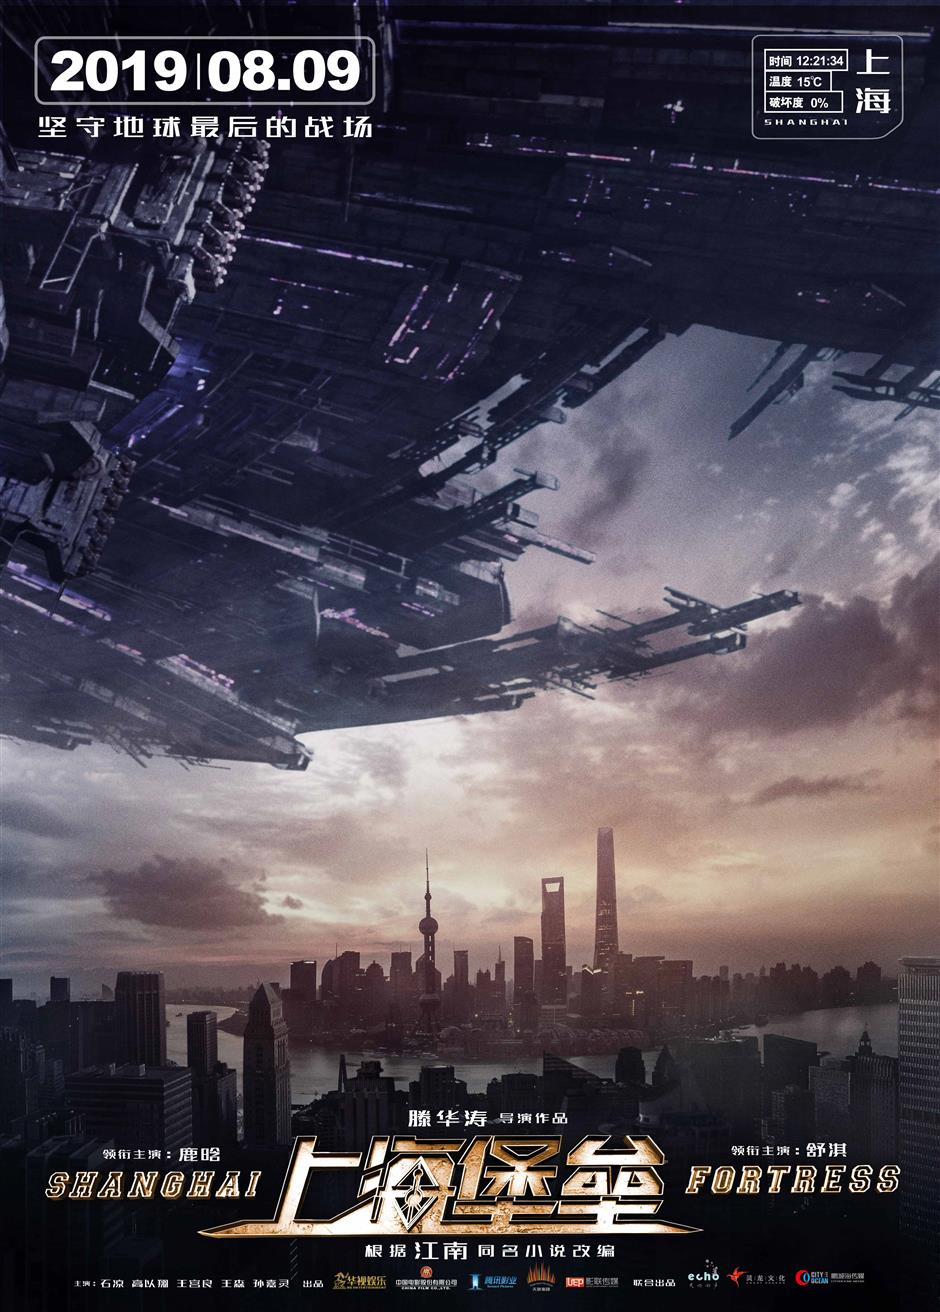 Chinese sci-fi movie Shanghai Fortress set for August premiere